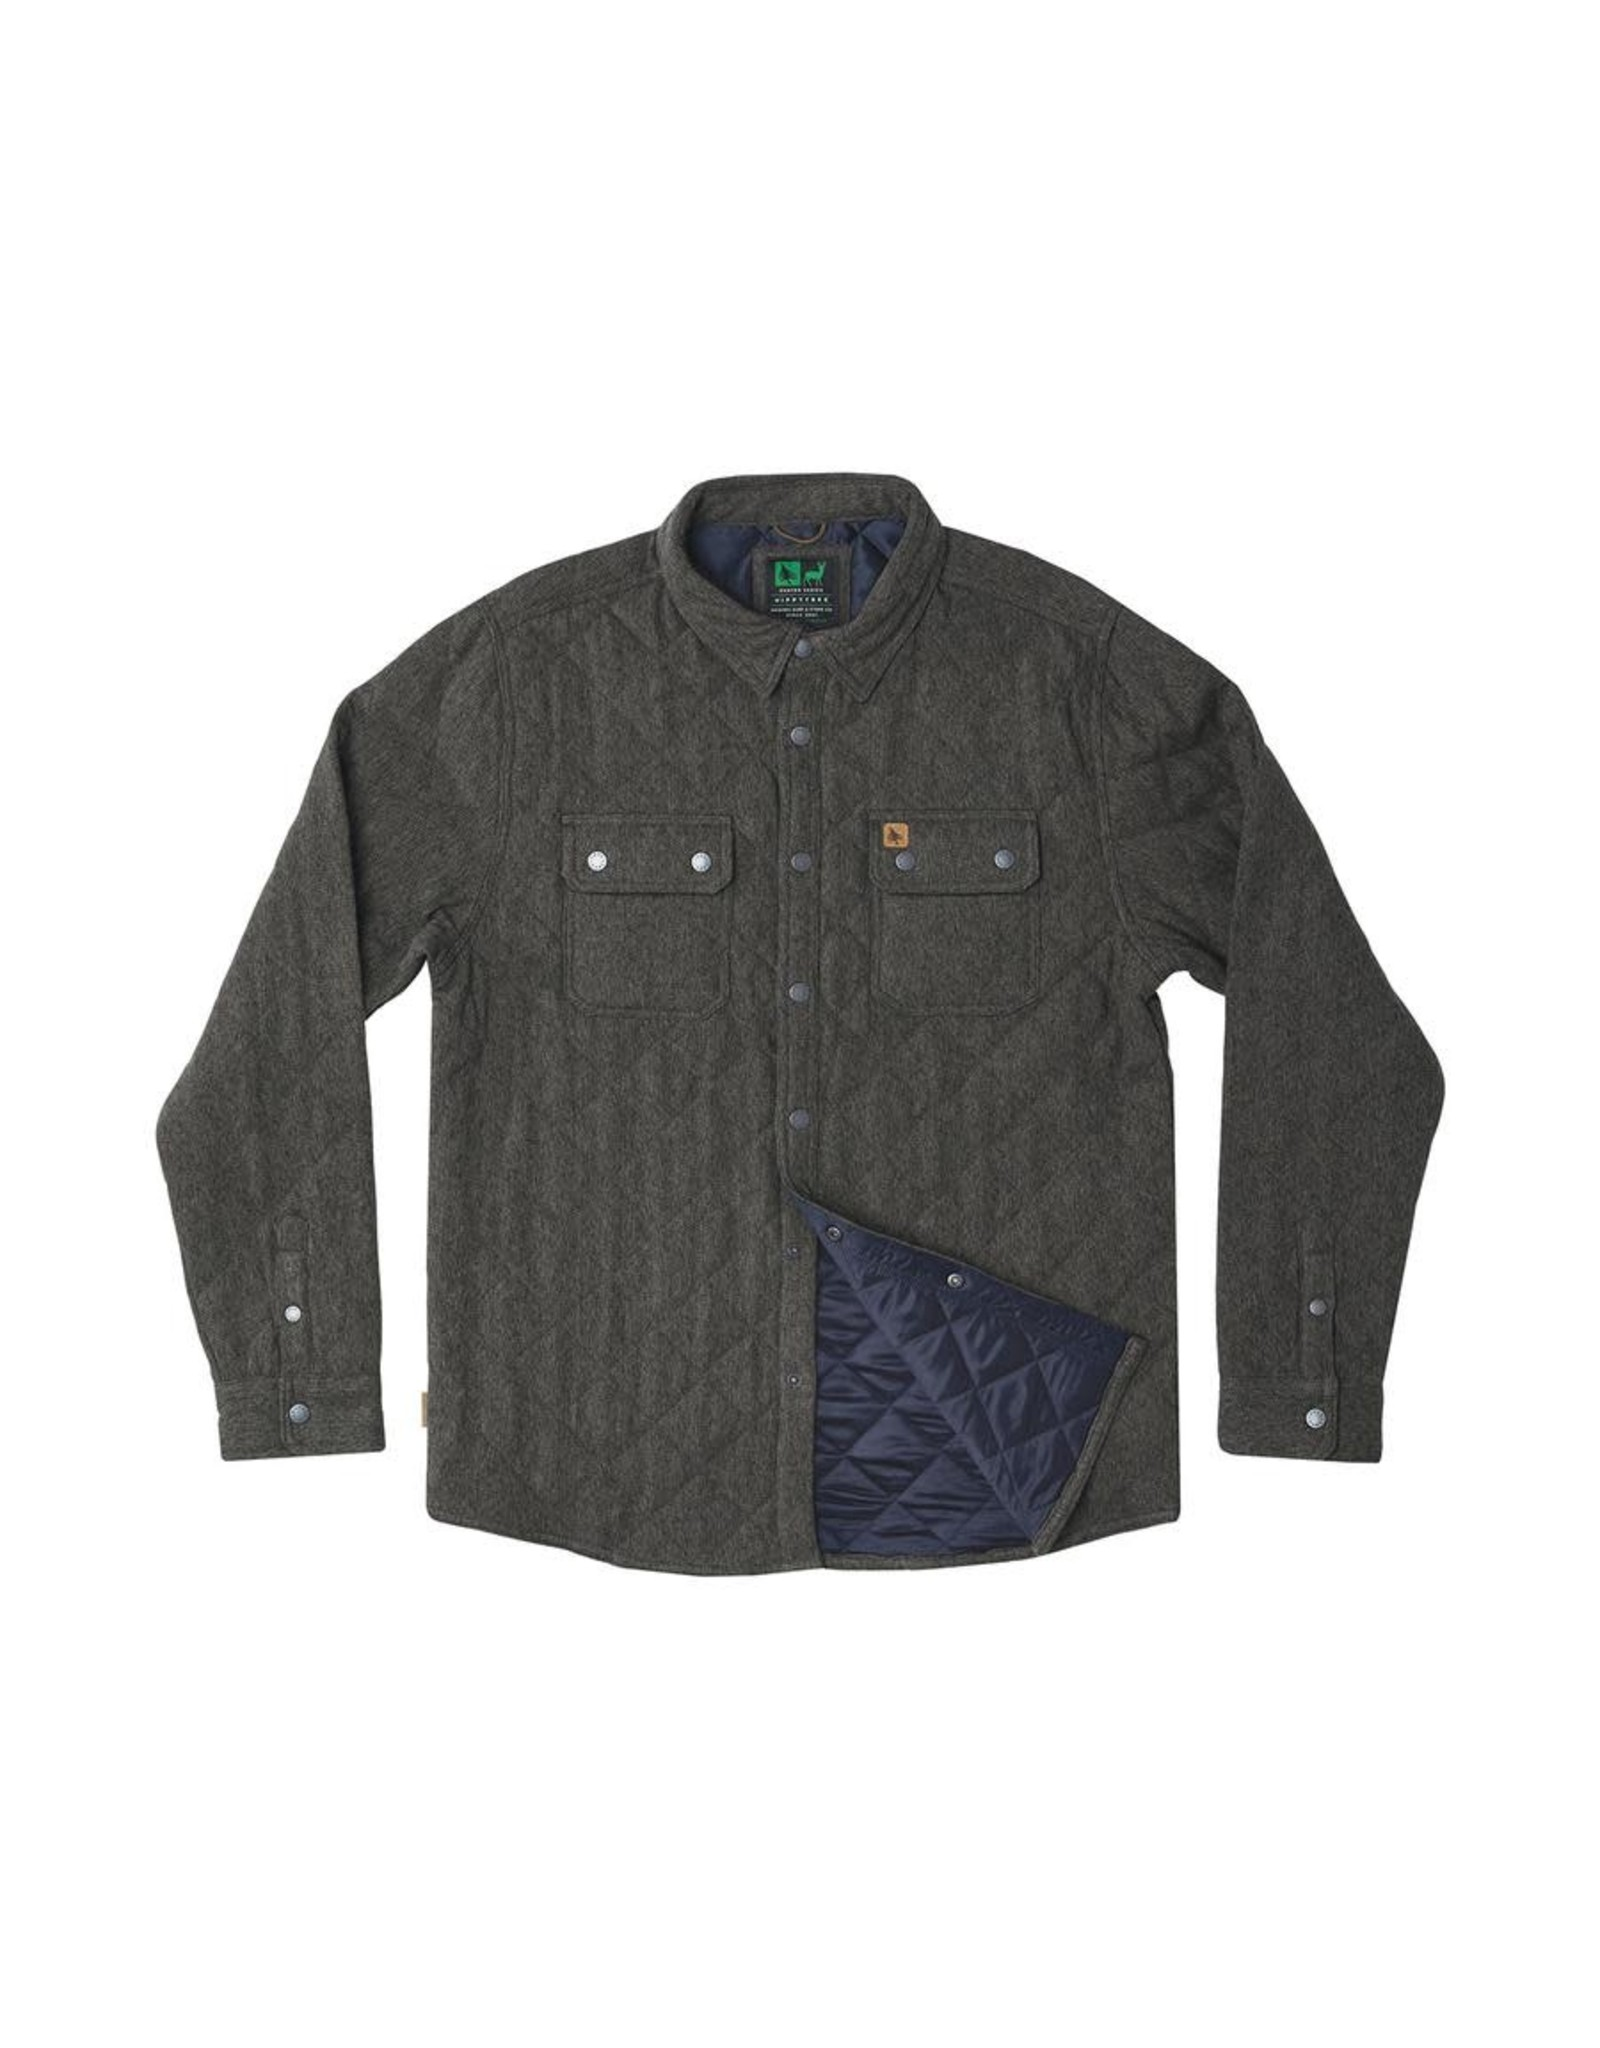 Hippy Tree HT Cutler Jacket: Forest